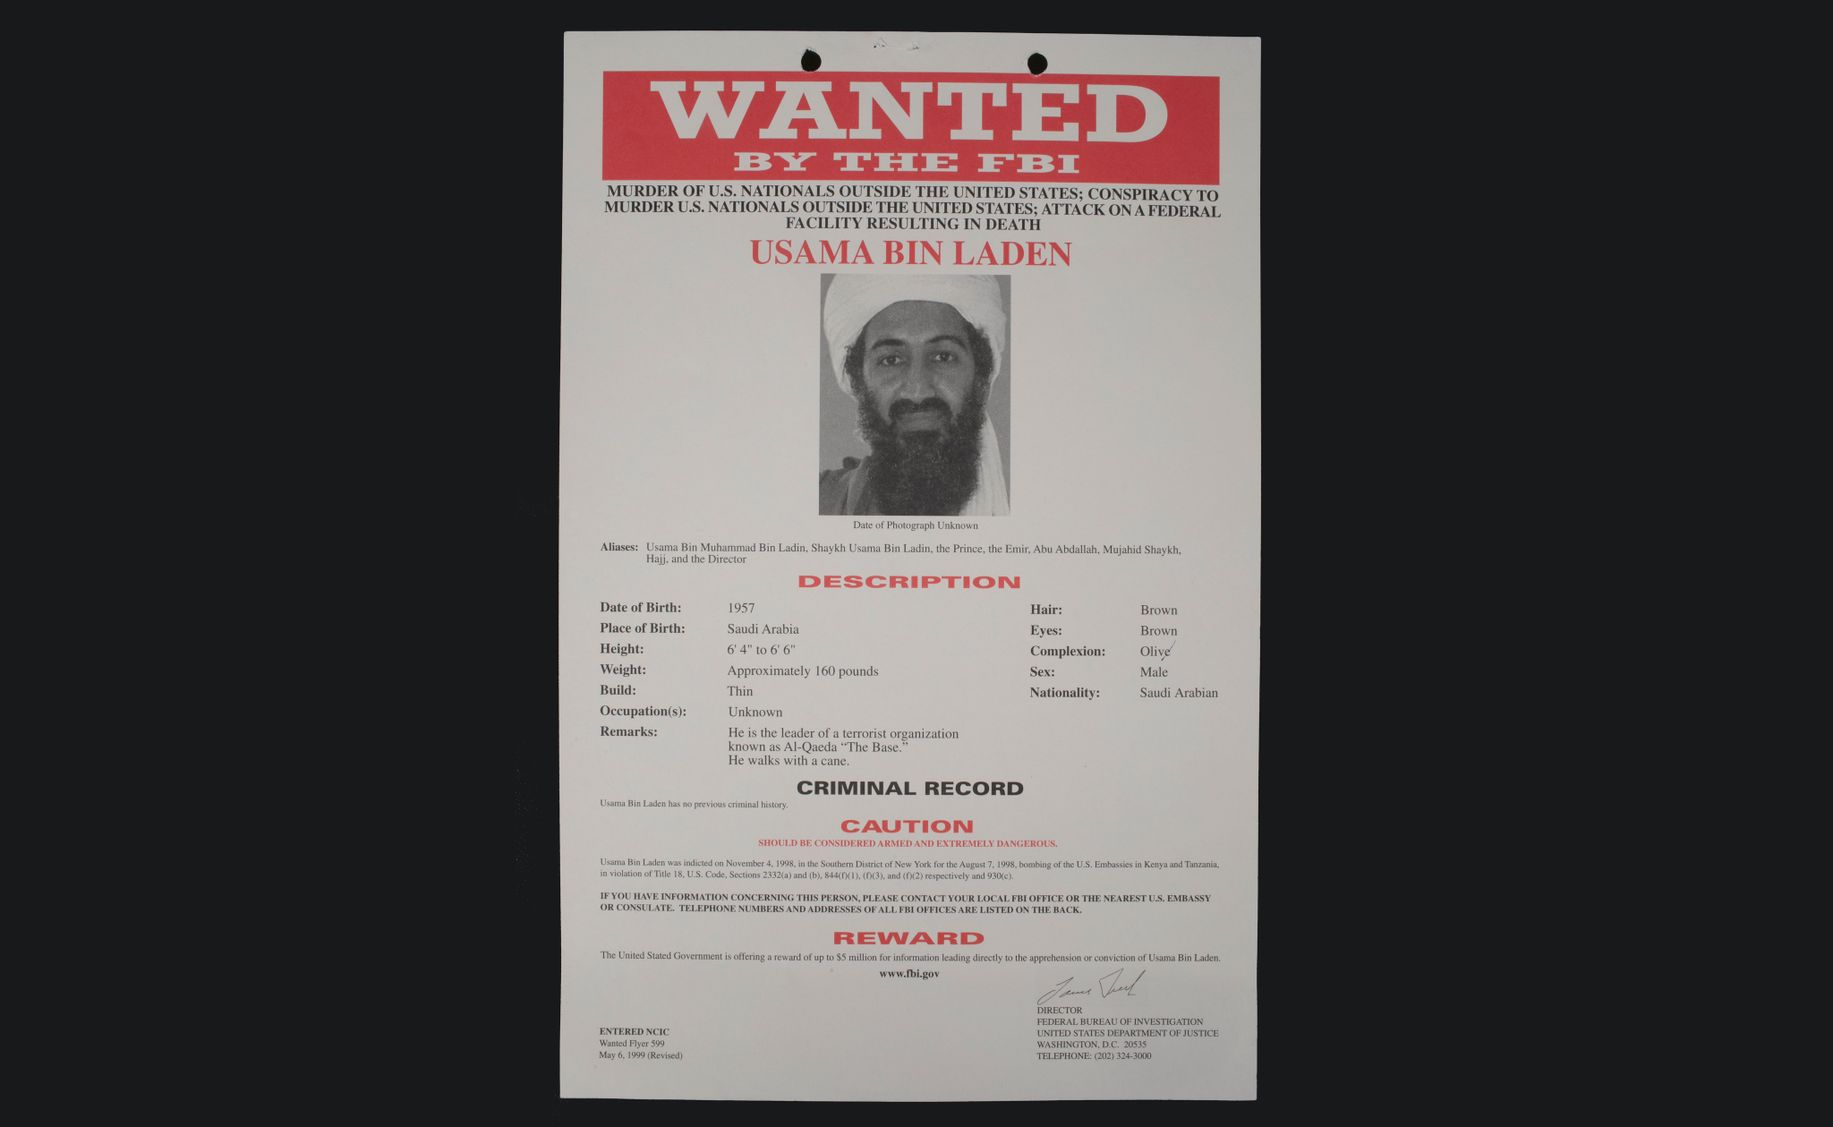 FBI wanted poster for Osama bin Laden. It includes a black and white photo of bin Laden and his physical description.